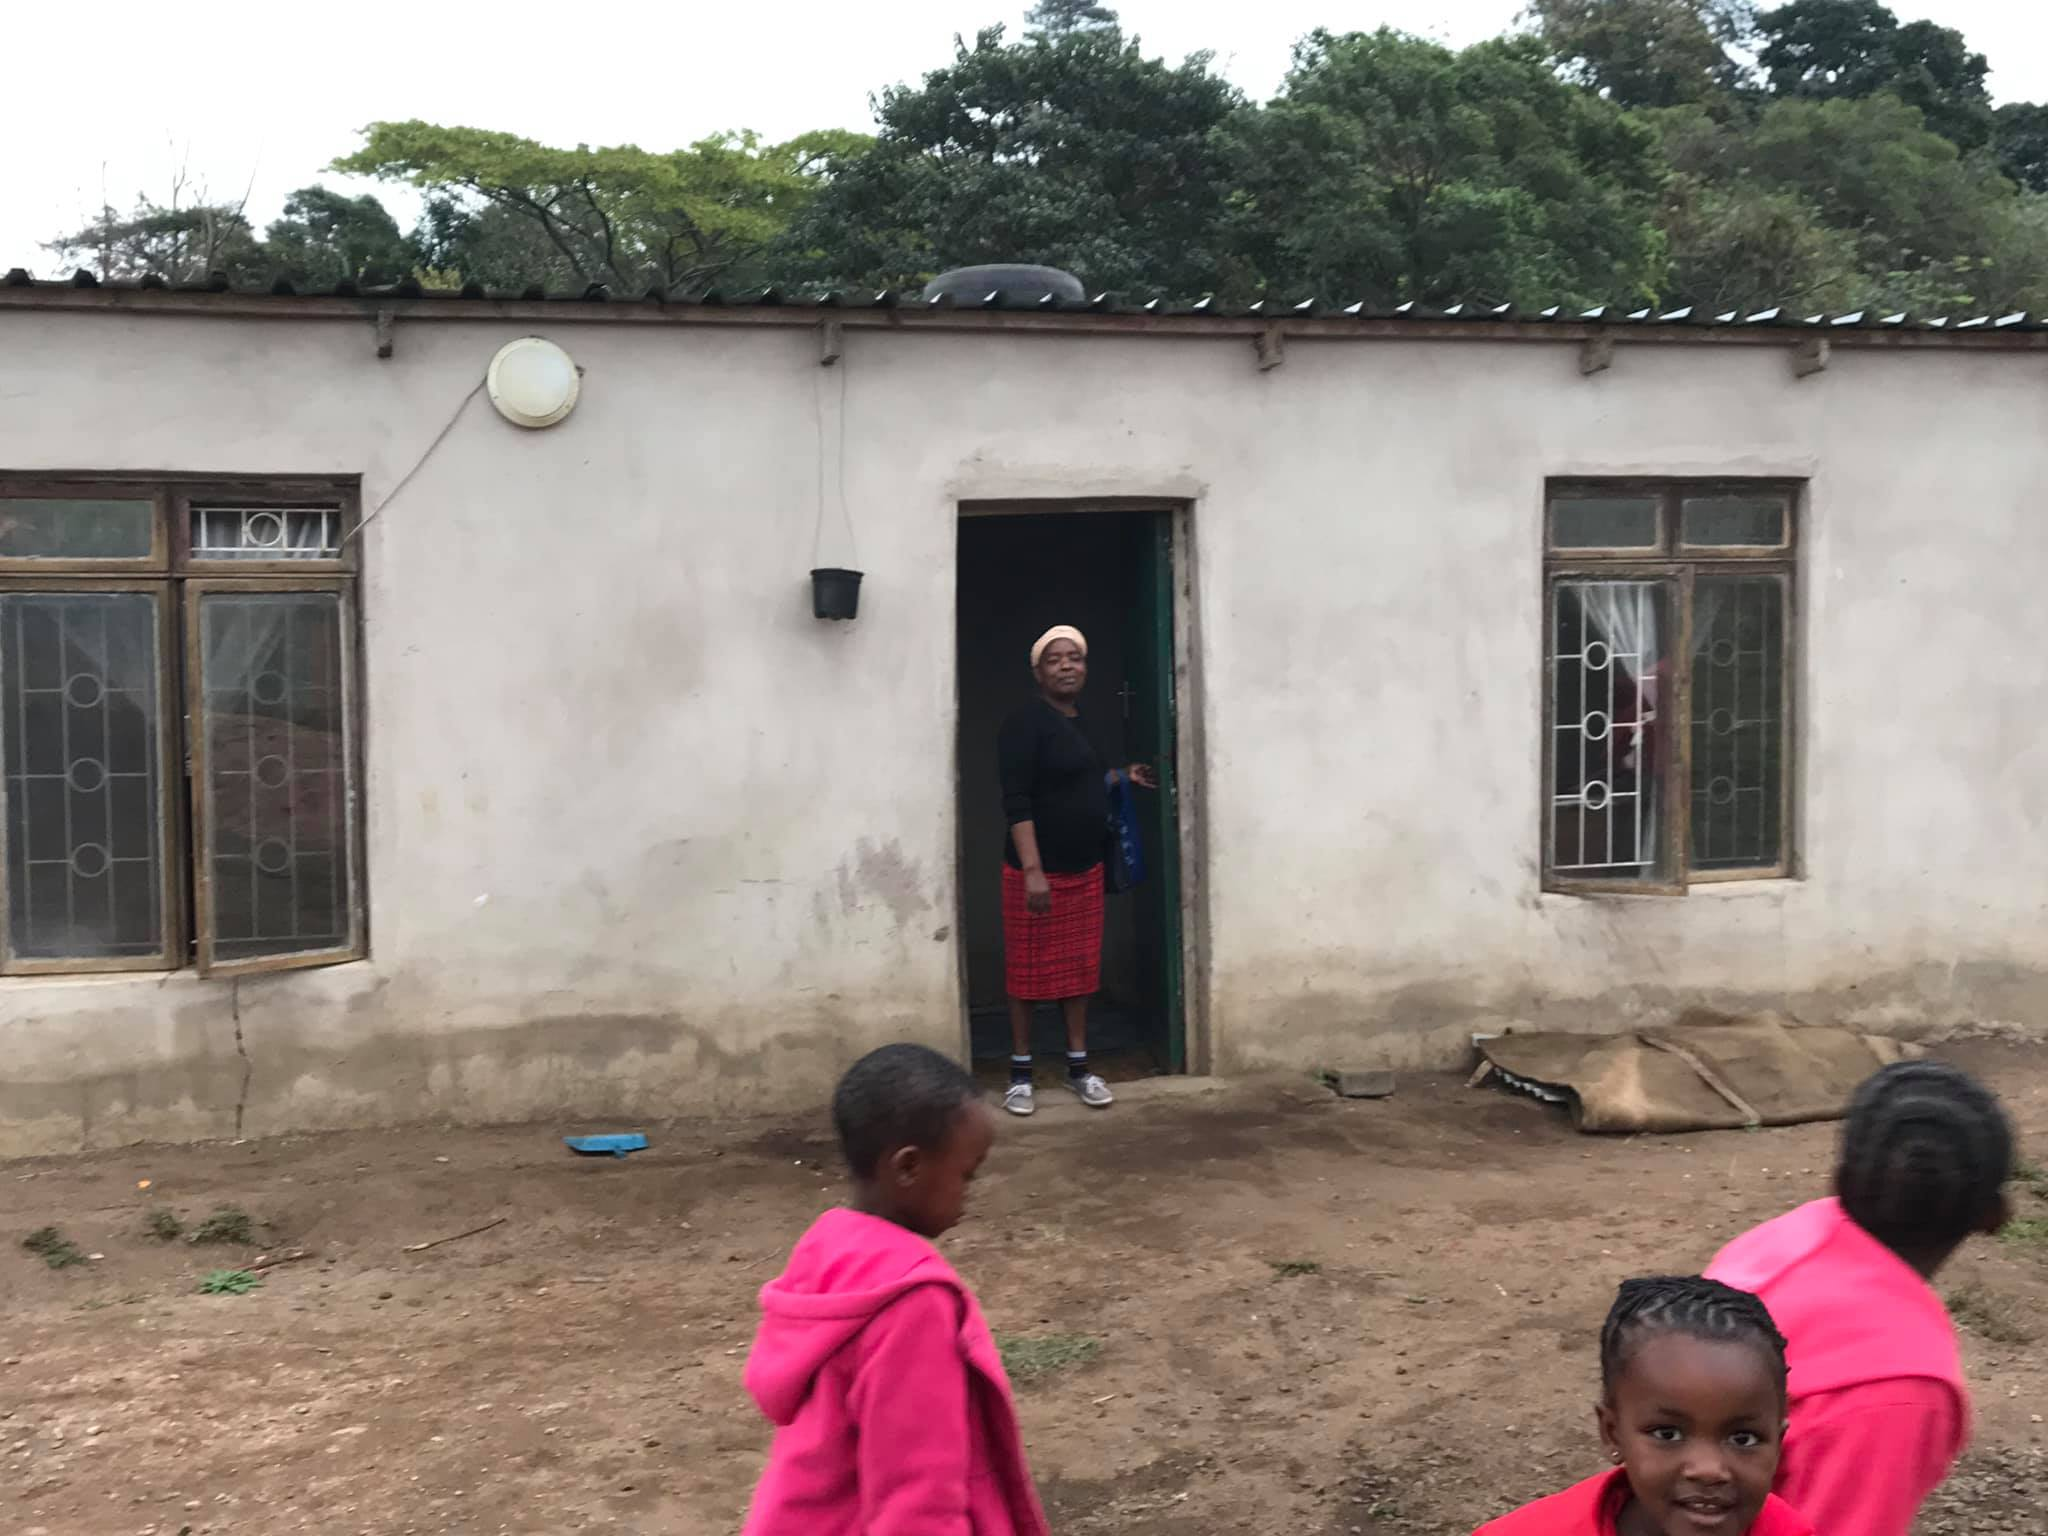 Bongi built her own house from scratch, mainly built on second hand items and with some help from Children of Zululand